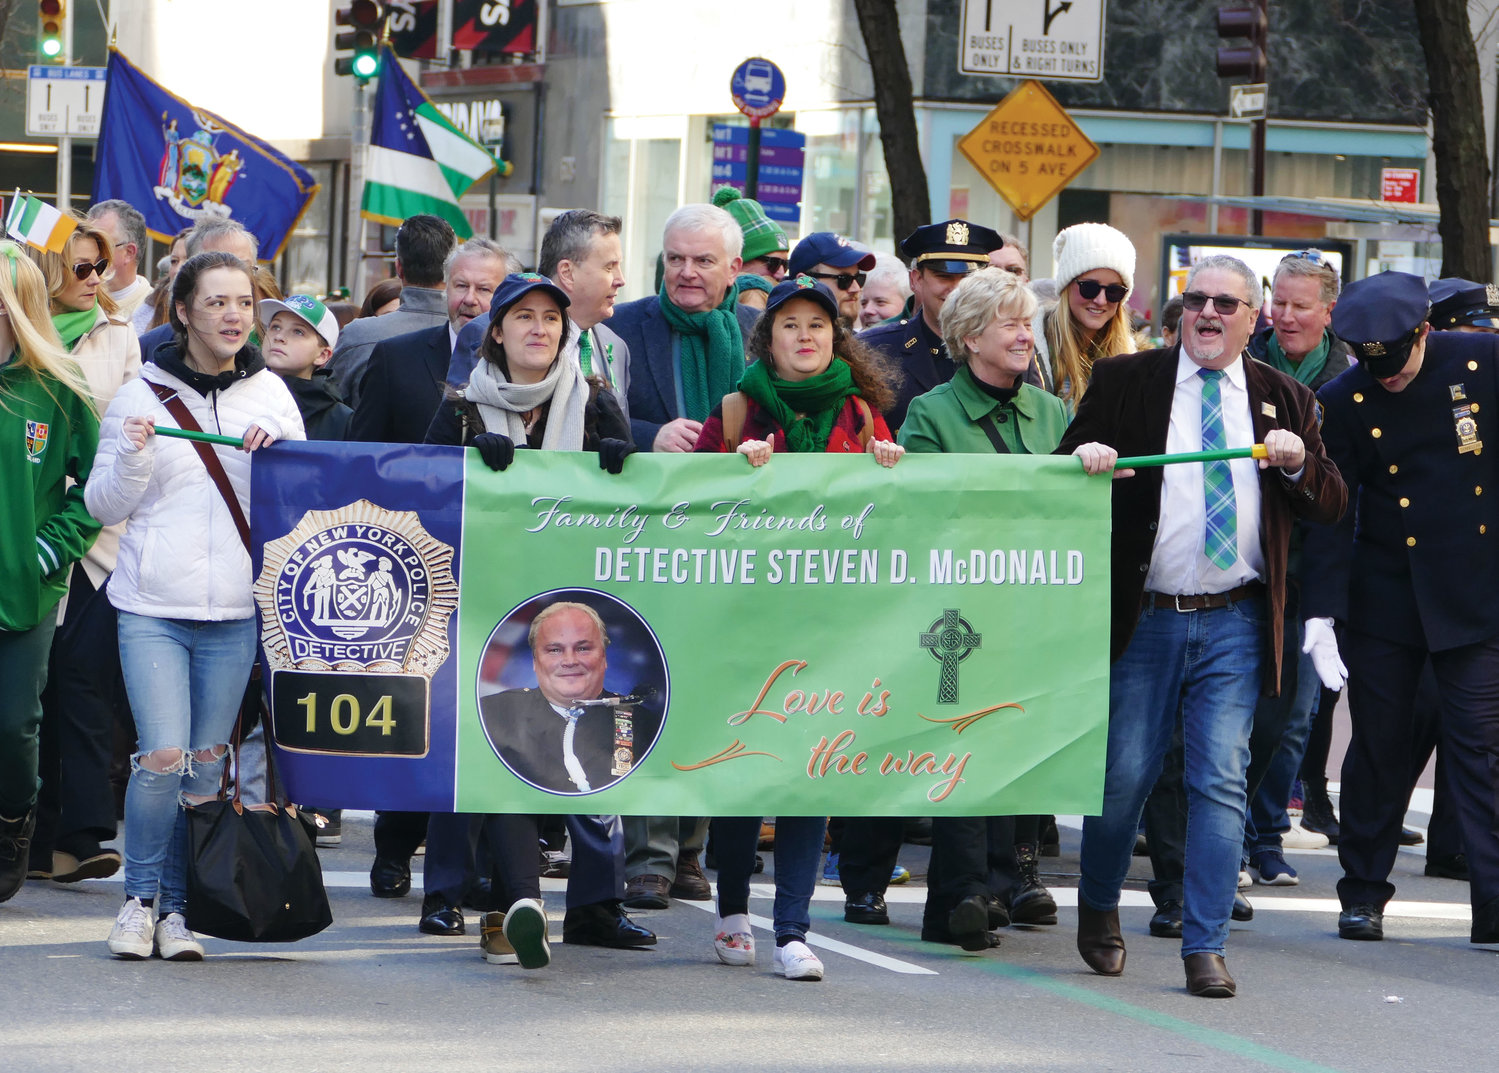 Students from Manhattan College stride with smiles on their faces during the 258th New York City St. Patrick's Day Parade in Manhattan March 16.